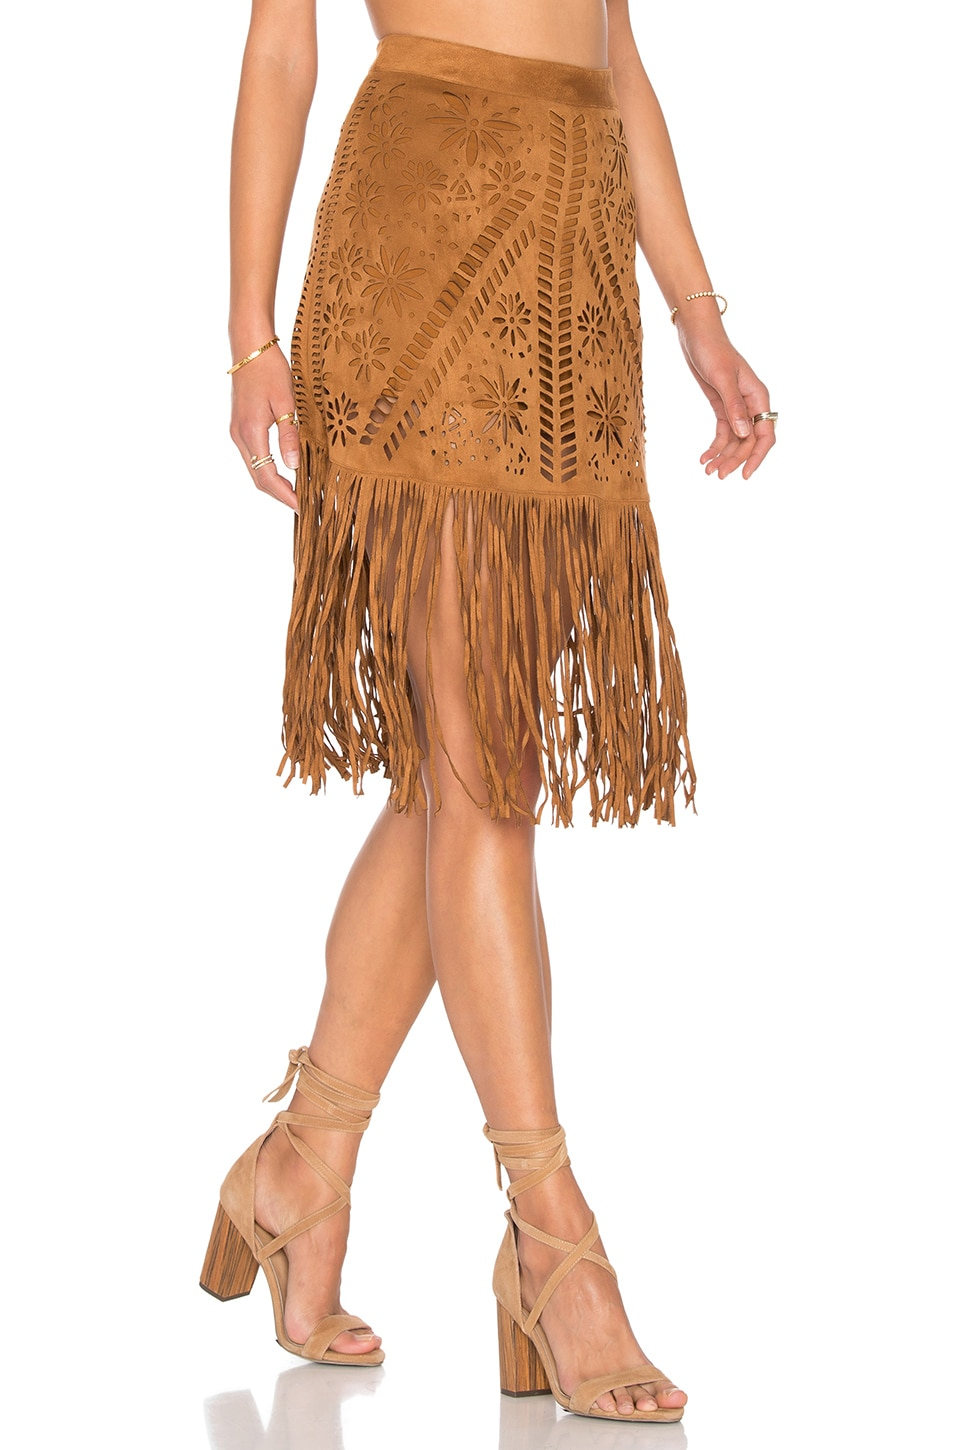 FARM Fringe Laser Cut Skirt in Suede